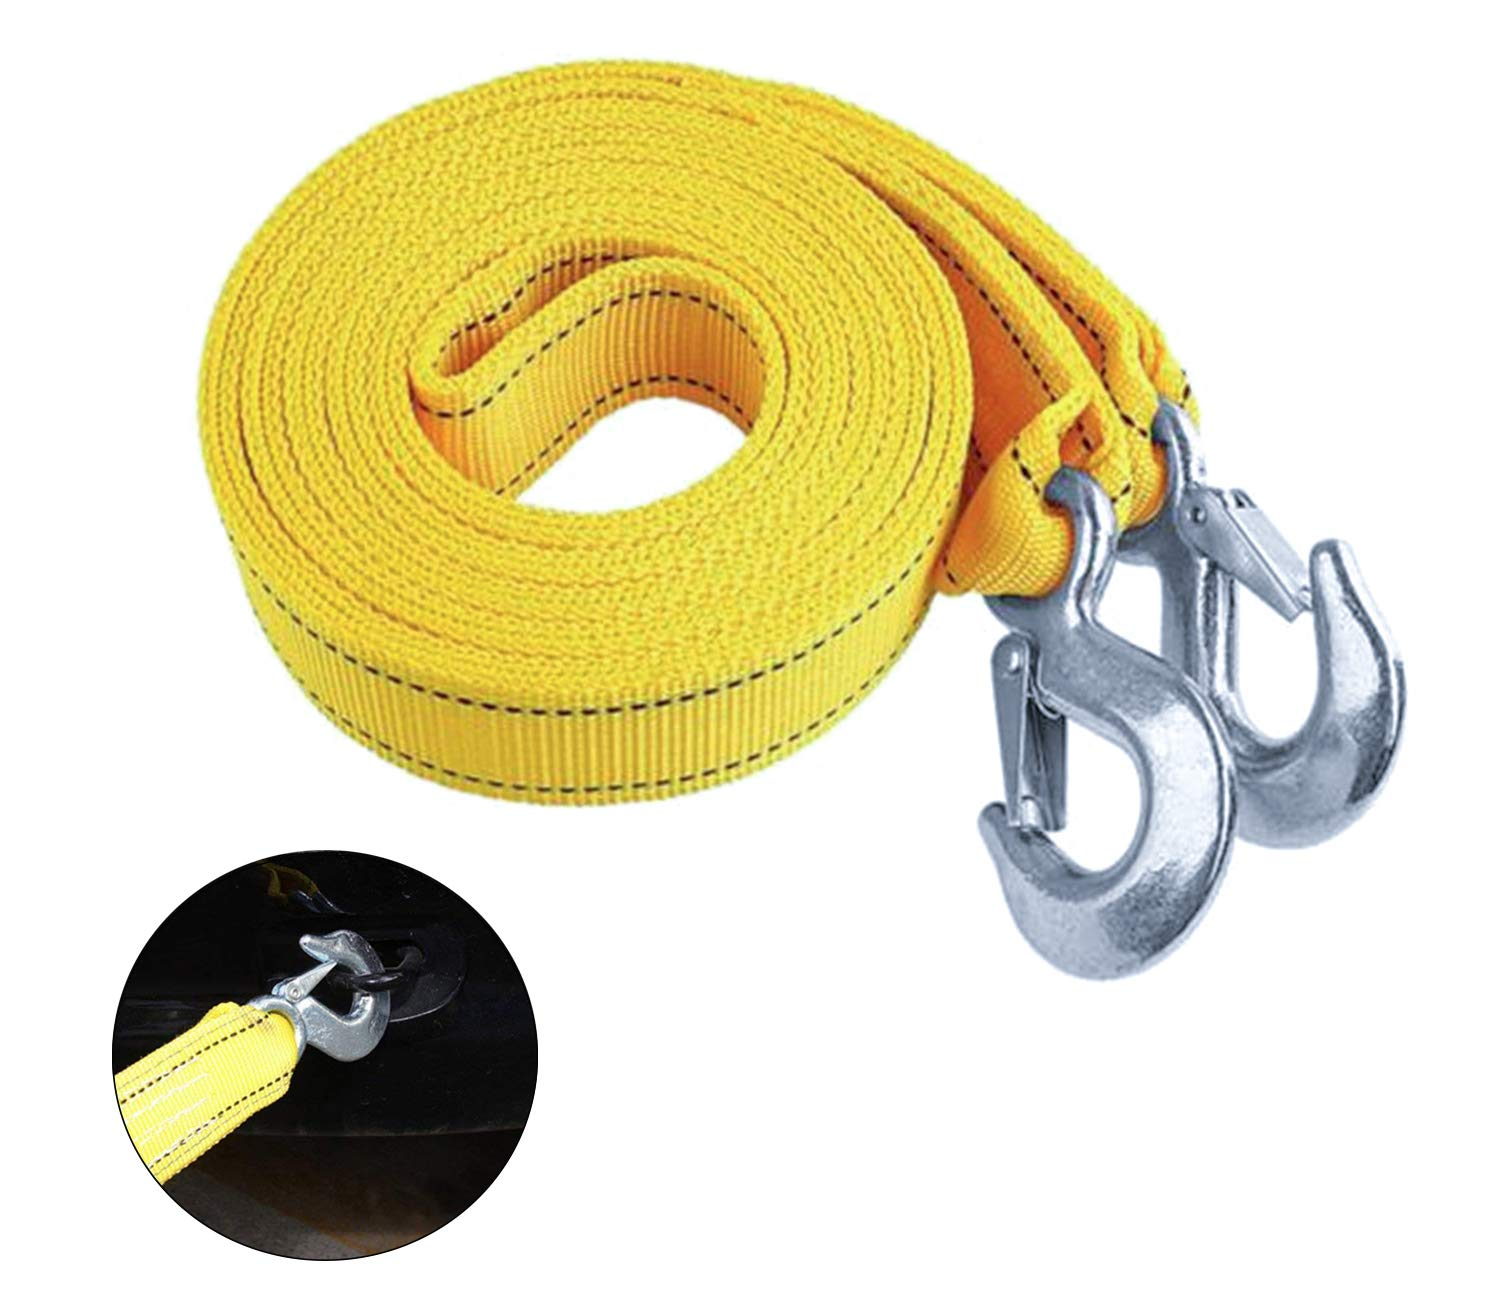 Heavy Duty Tow Strap with Hooks Nylon 1.65' X 13', 5 Ton Polyester 11, 000lb Towing Recovery Tow Rope Poweka